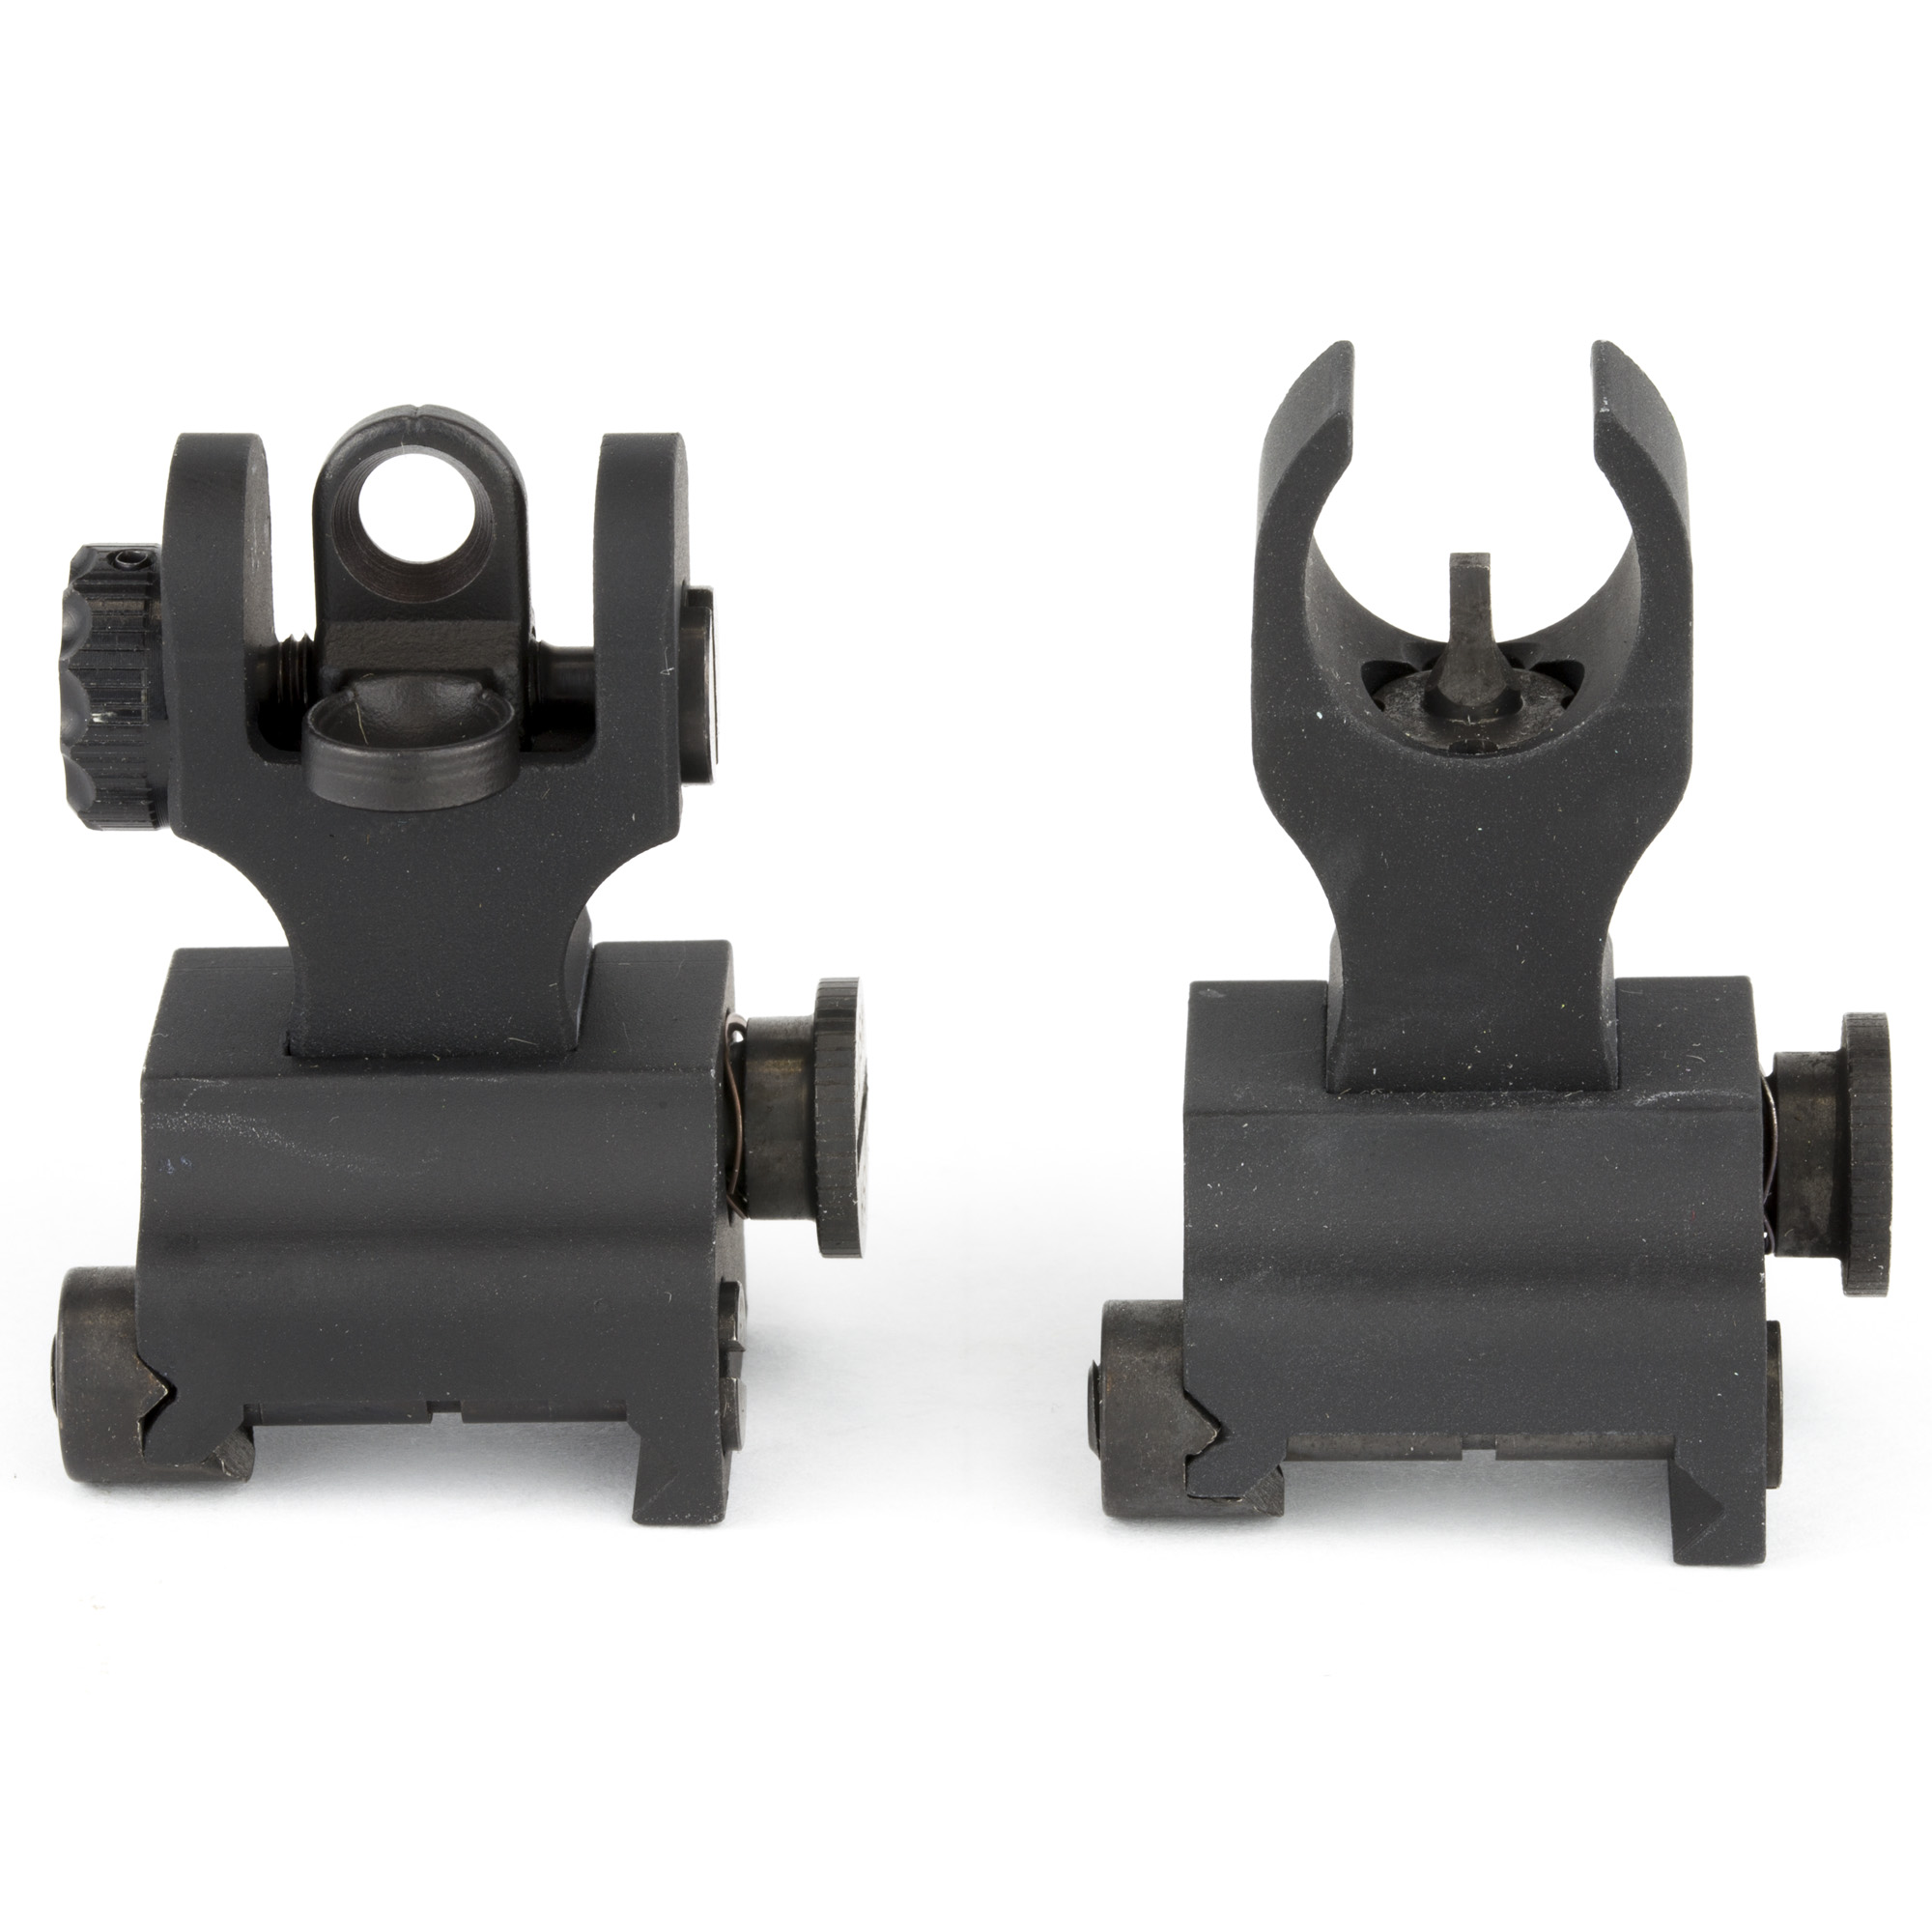 """Samson Manufacturing Corp. Sight Picatinny Black Package Includes Samson FFS HK Front Sight and Samson FRS A2 Rear Sight 6061 Aluminum"""" Mil-Spec Hardcoat Anodized for Durability"""